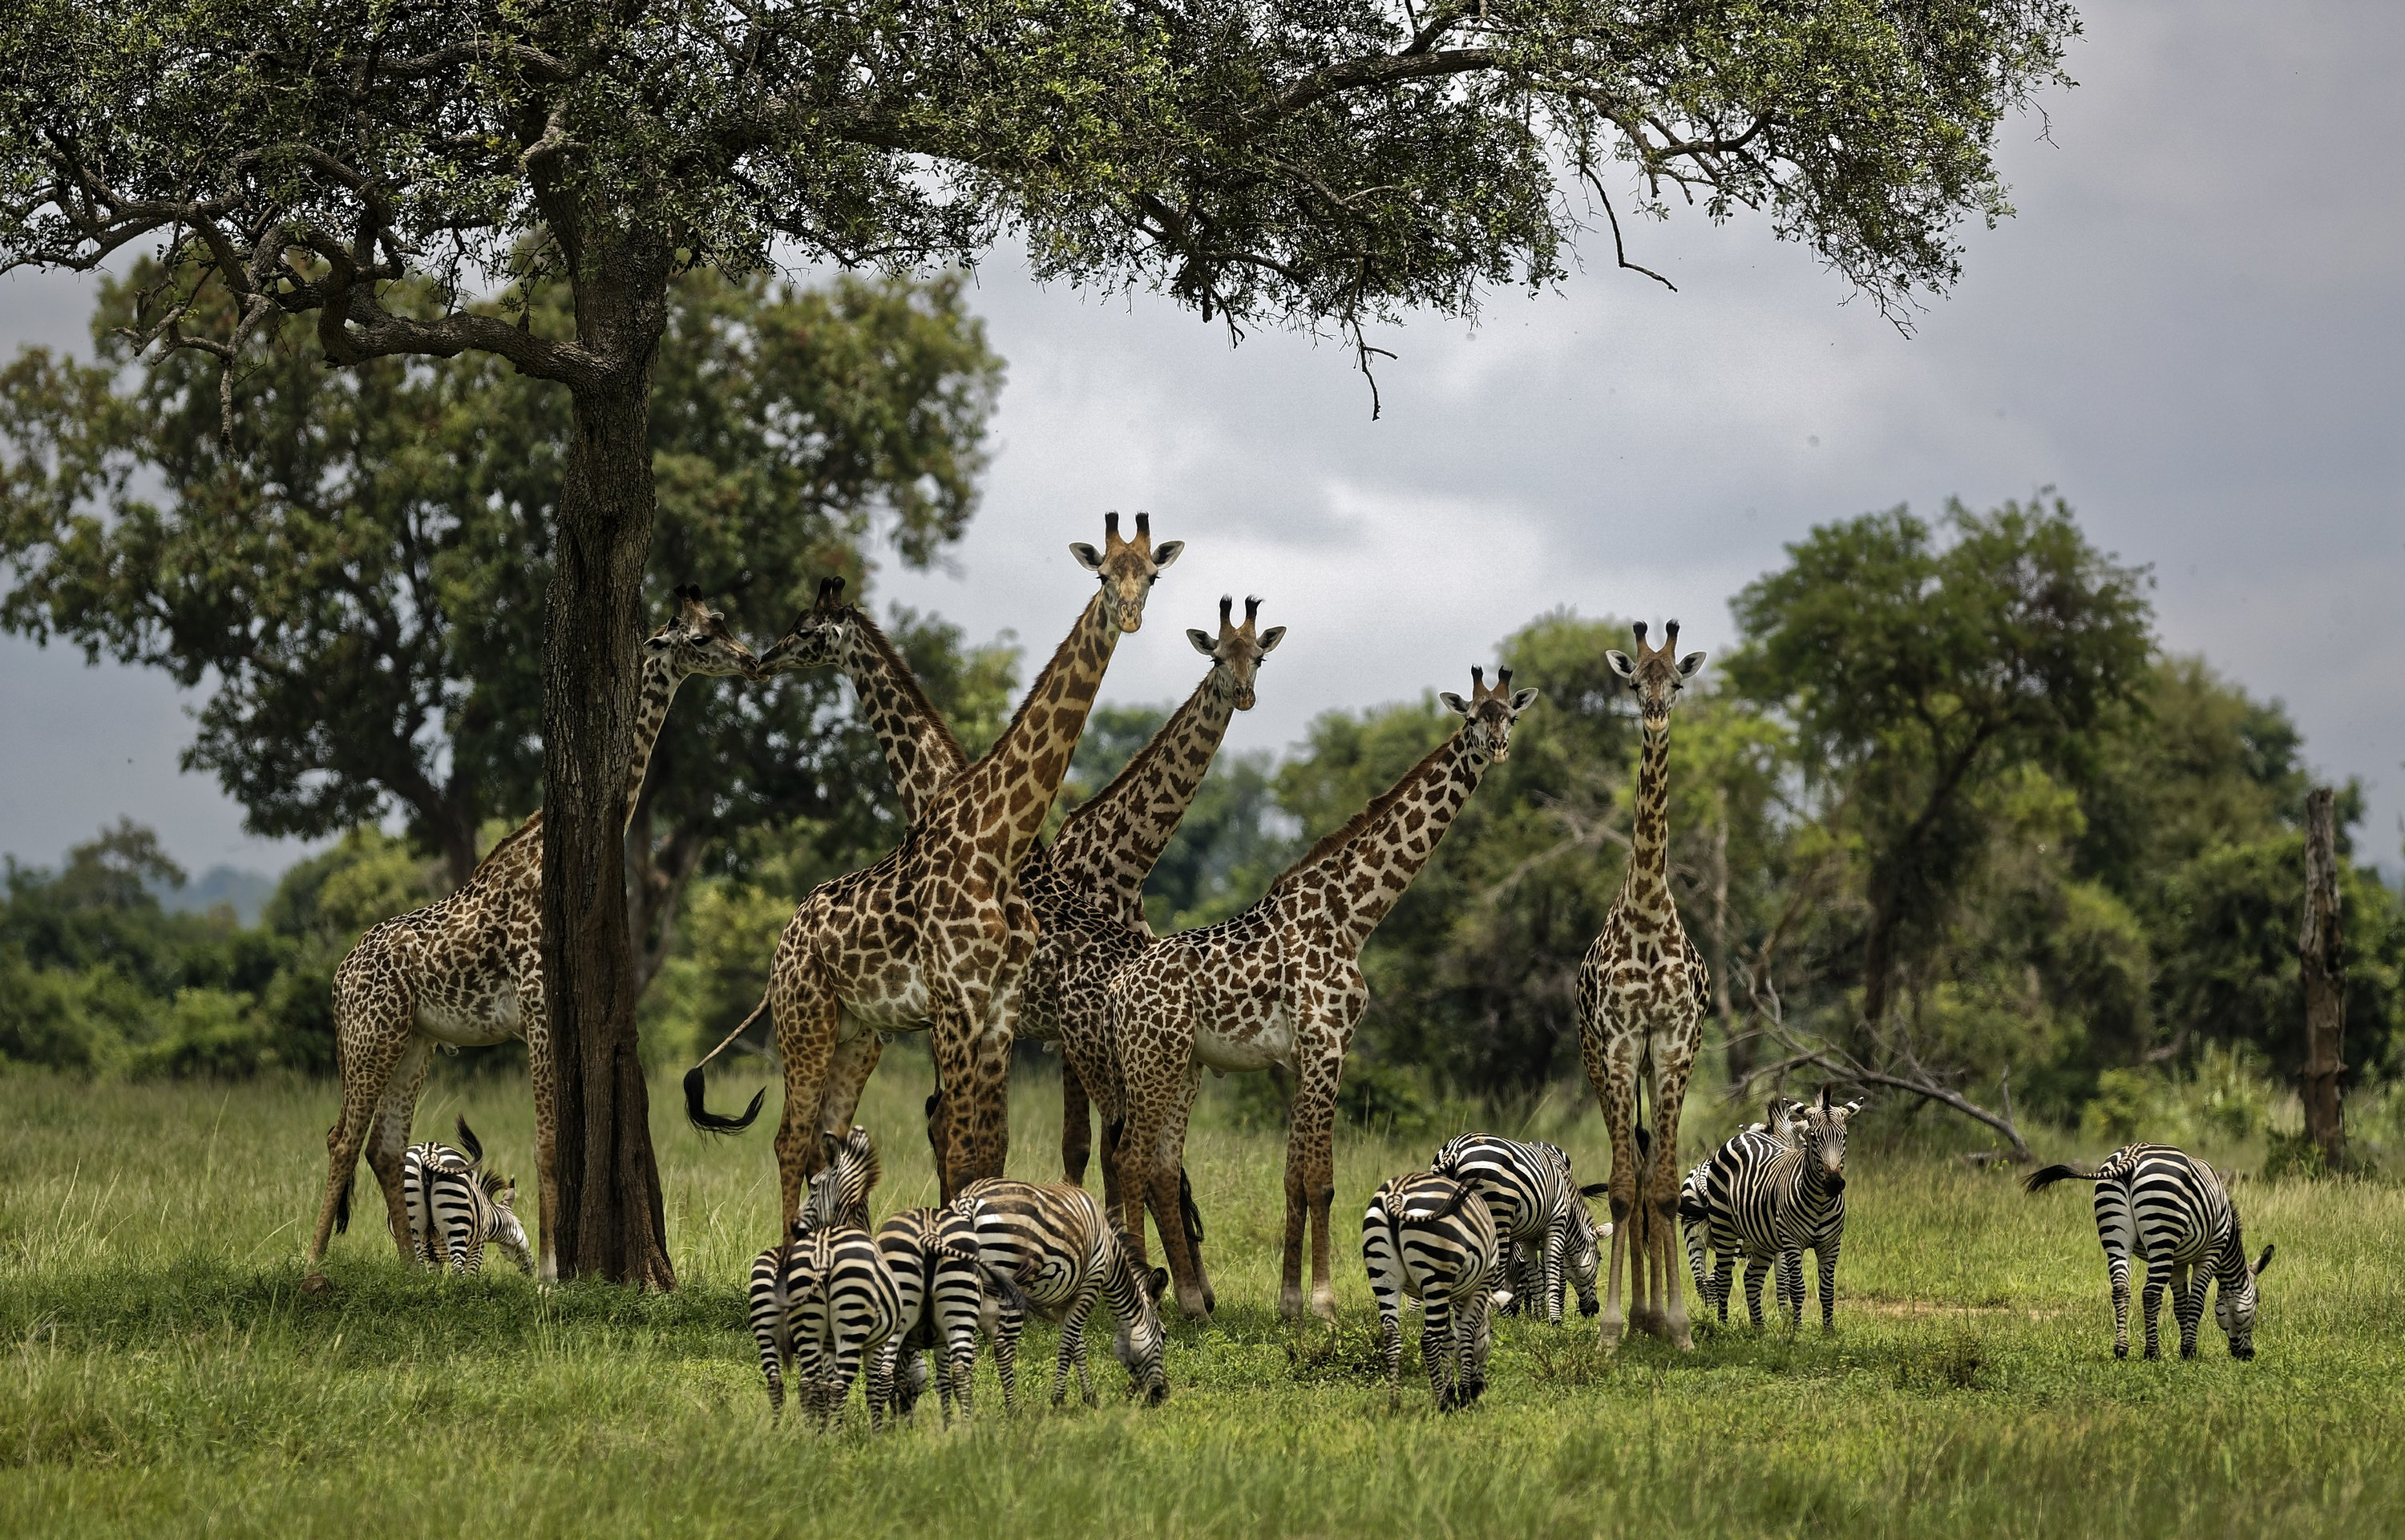 Giraffes a tentative step closer toward federal protections